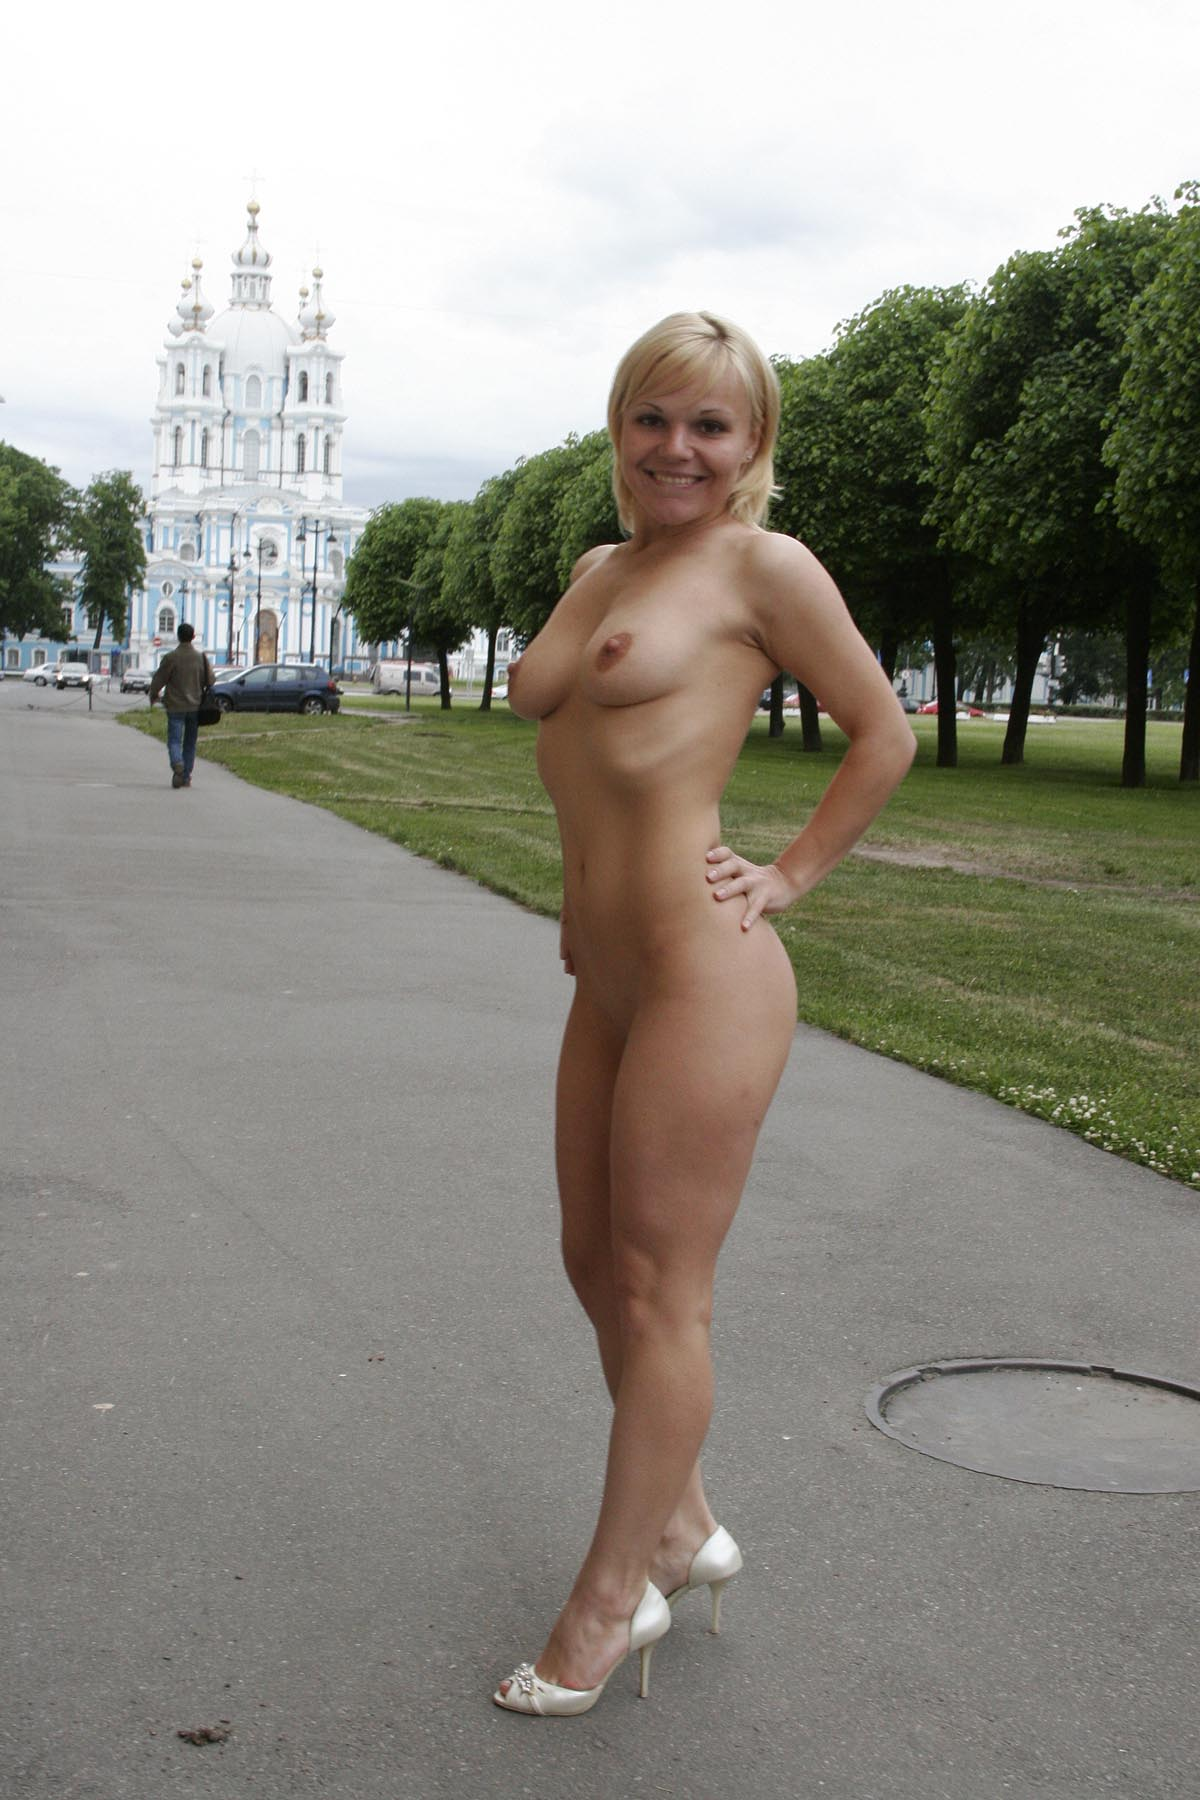 Short haired women nude-6102